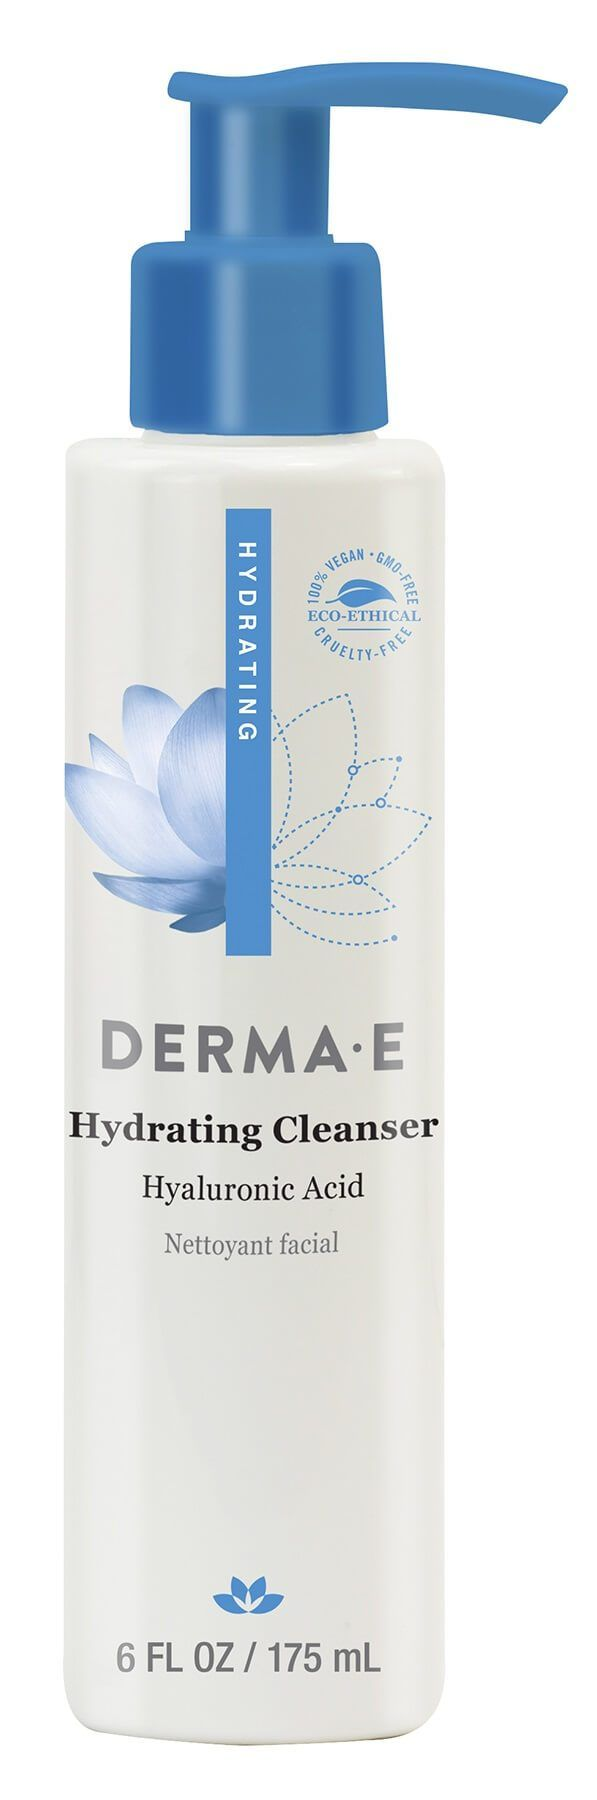 Personal Care - Derma E - Hydrating Cleanser - 175ml